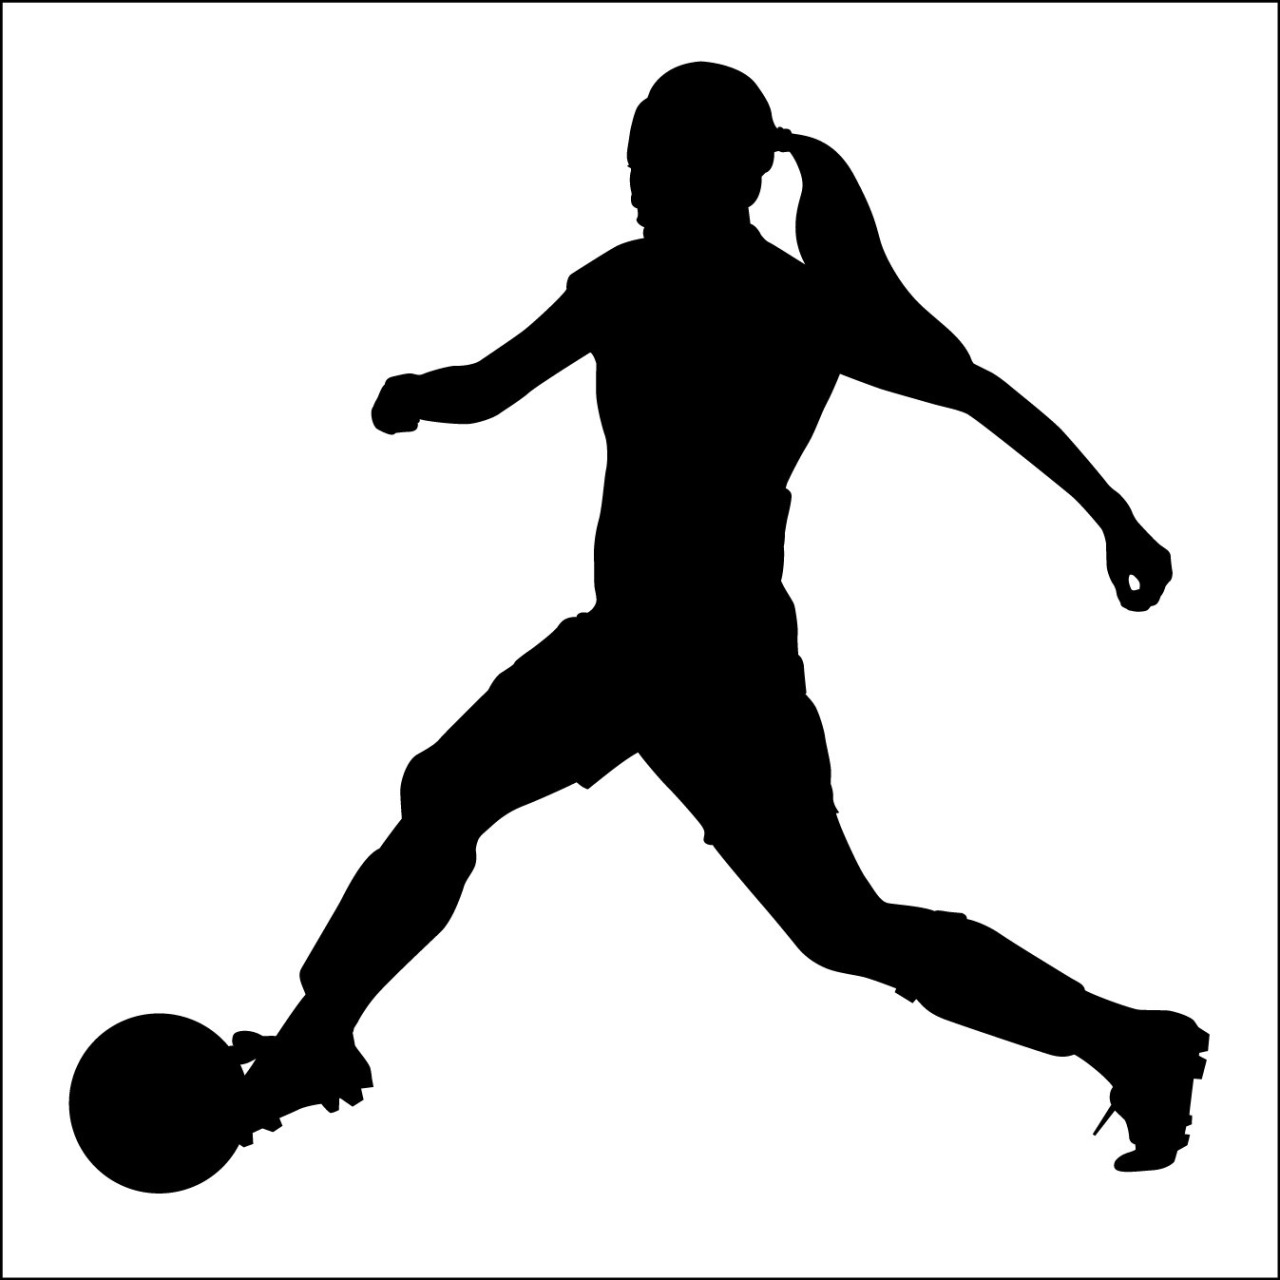 soccer player silhouette boy playing soccer children39s wall decor boy soccer player soccer silhouette